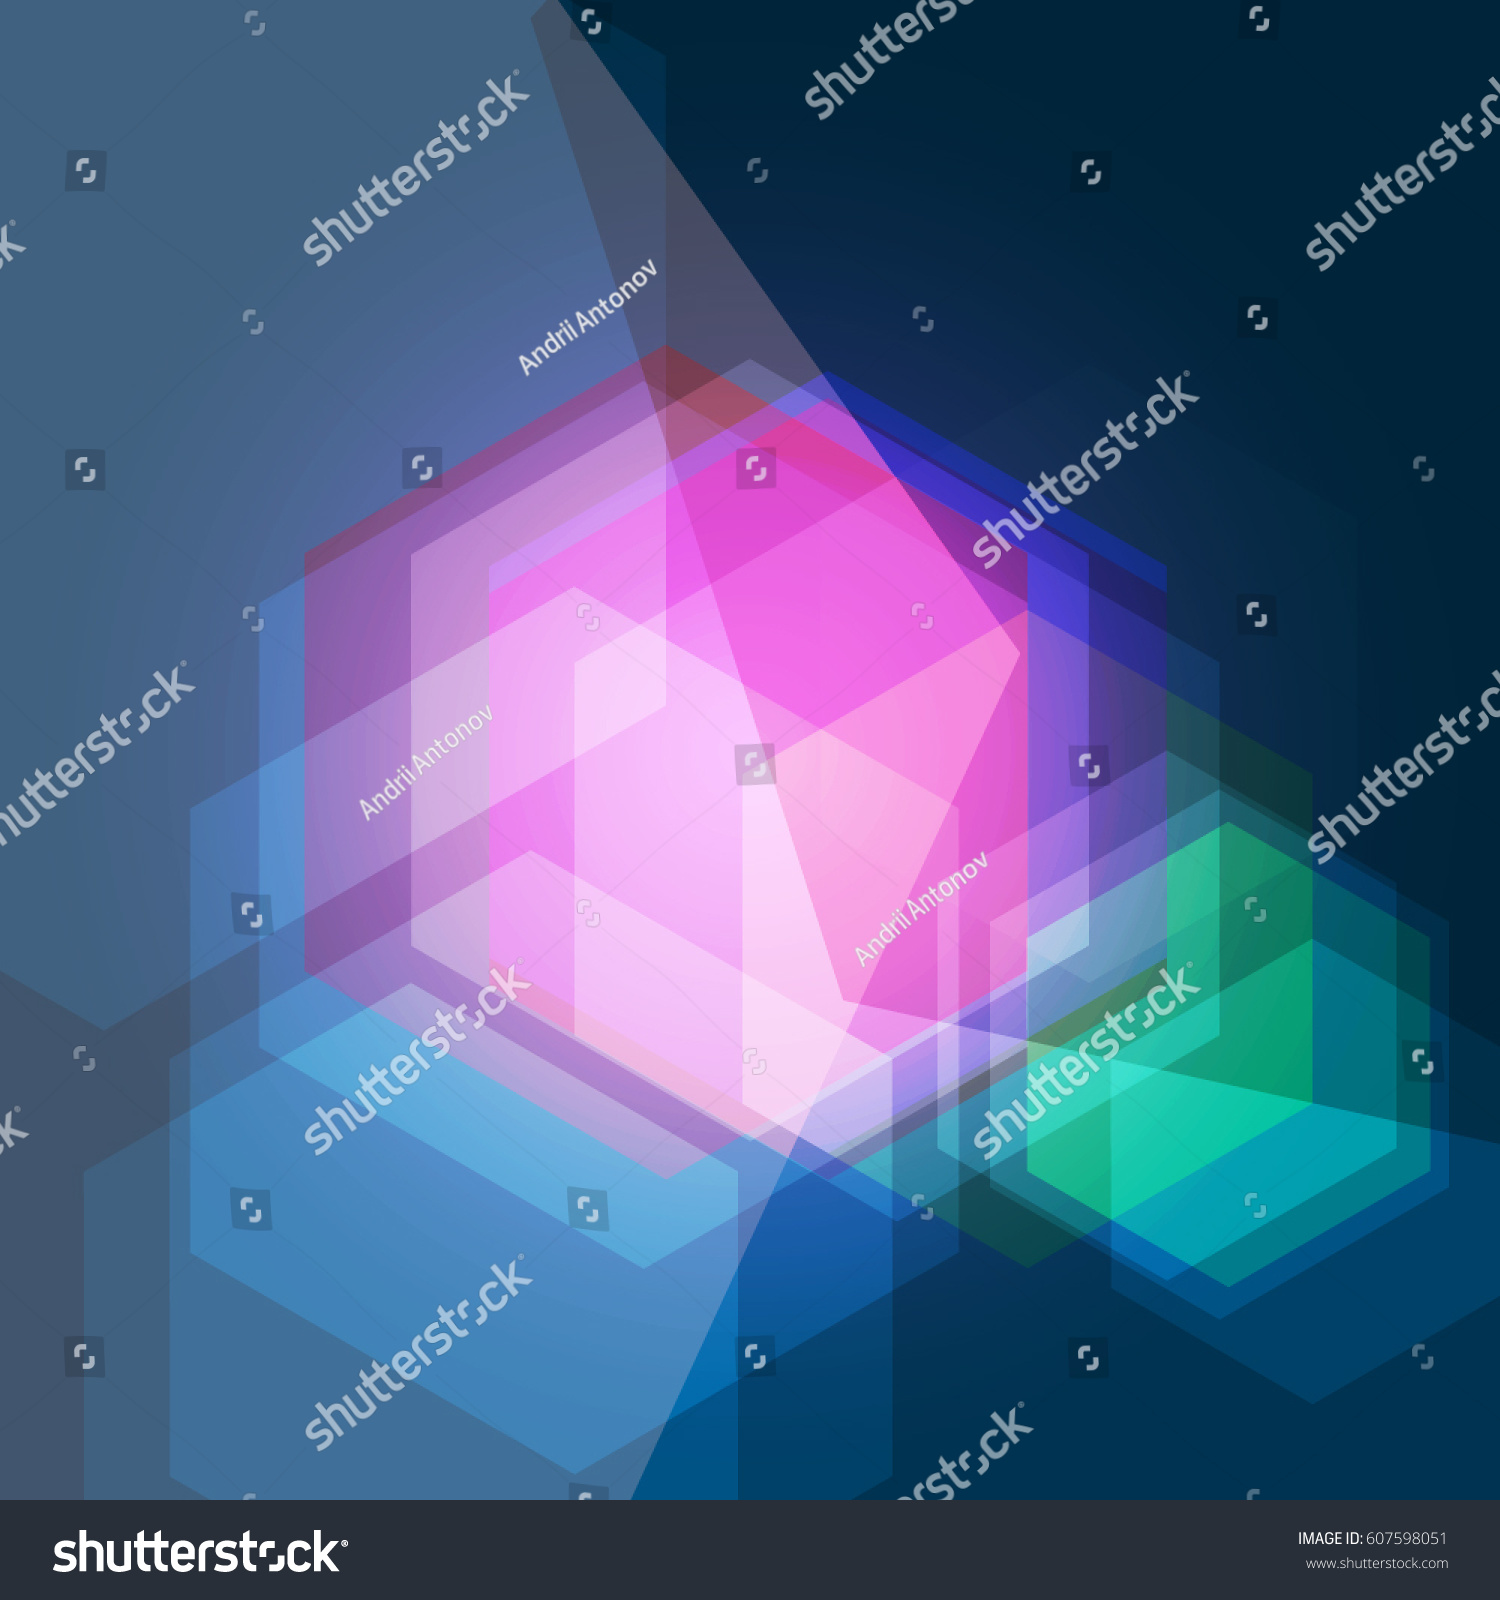 Top Wallpaper High Quality Abstract - stock-vector-neon-blinding-light-abstract-background-modern-dazzling-wallpaper-high-quality-abstract-vector-607598051  Collection_739266.jpg